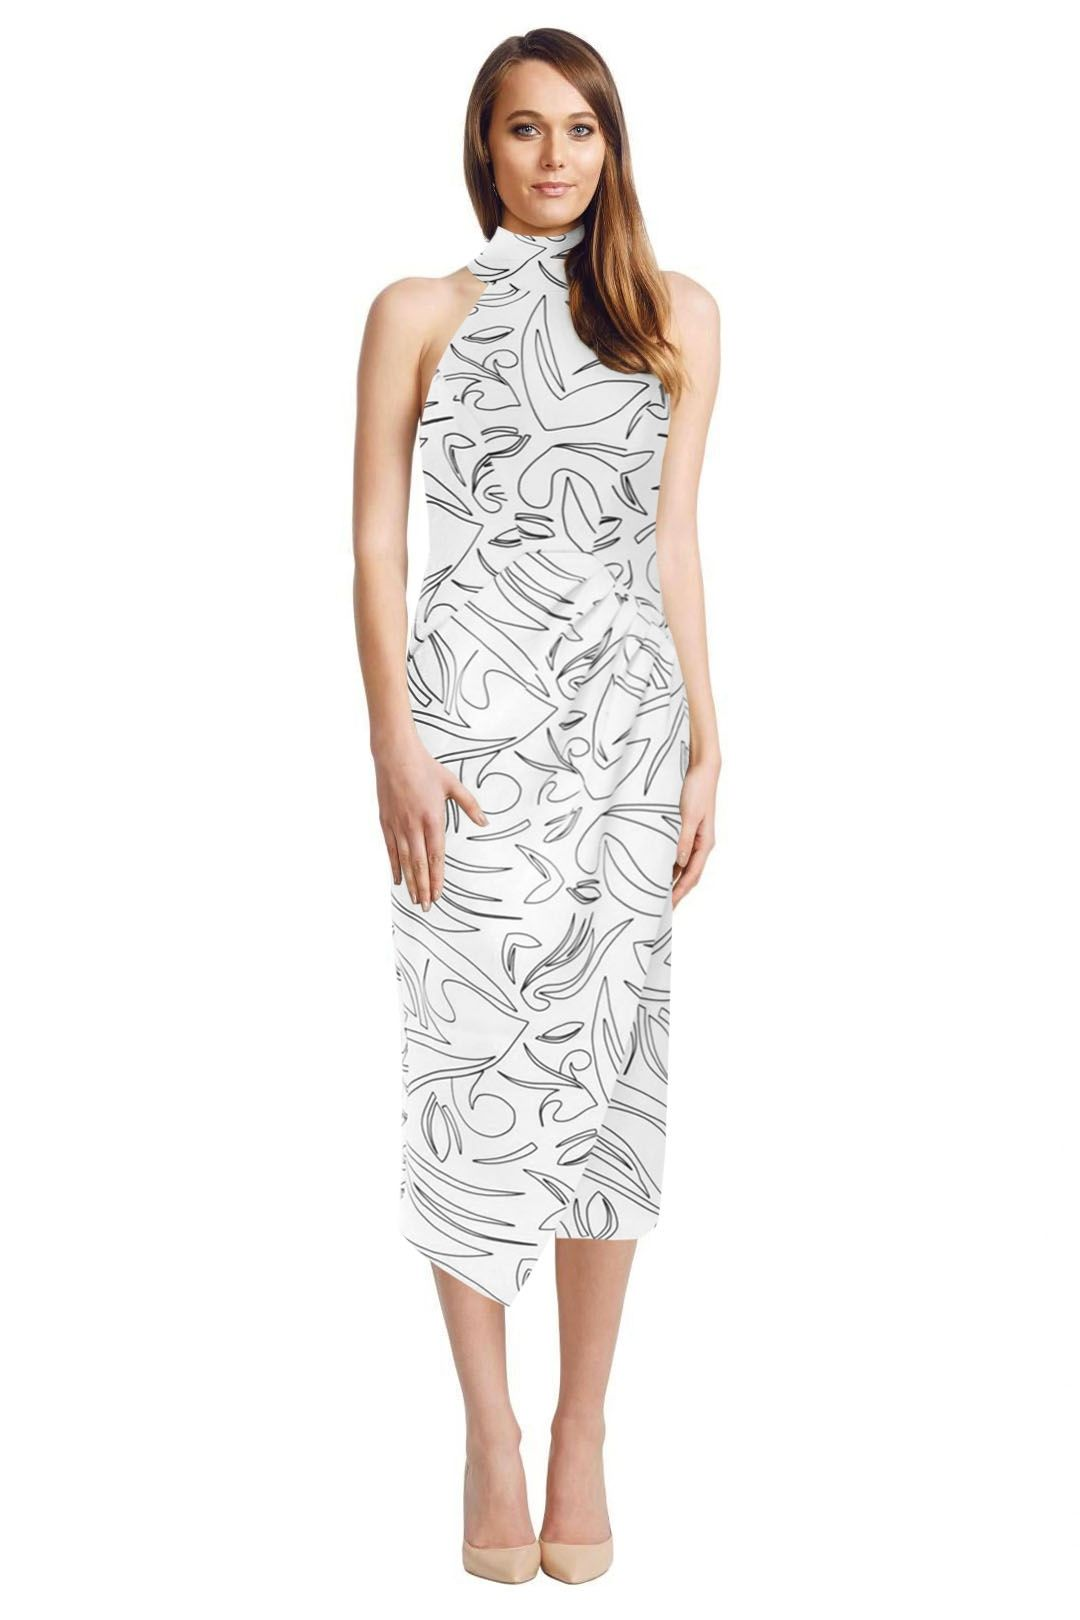 C/MEO Collective - Kiss Land Dress - White - Front